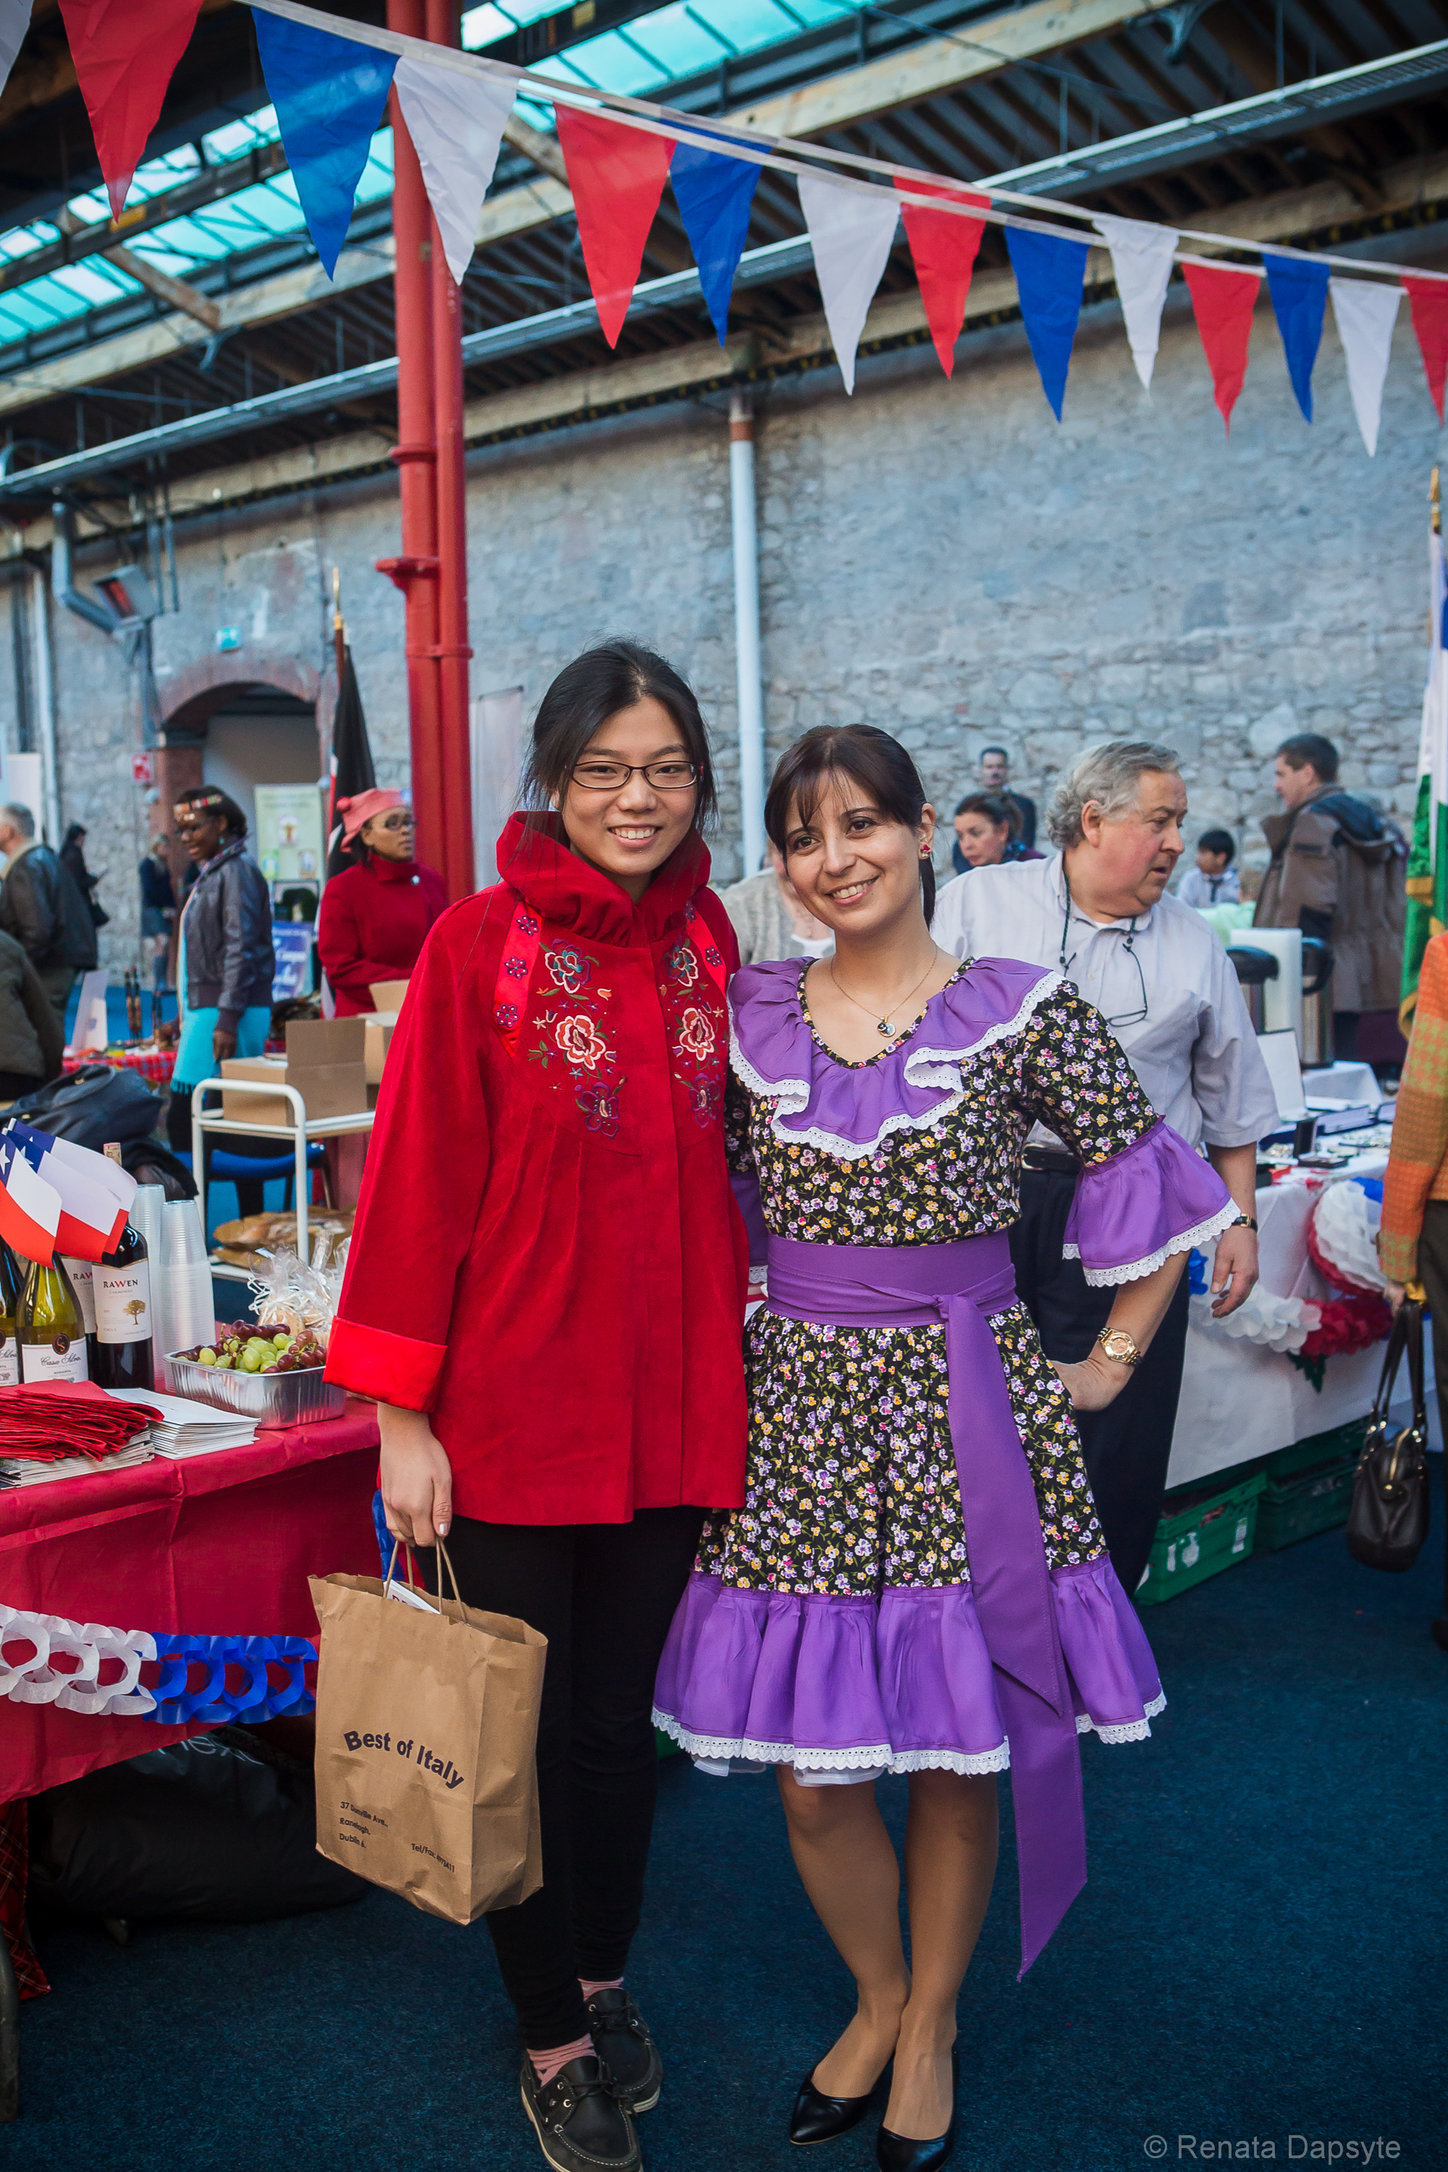 028_International Charity Bazaar Dublin 2013.JPG